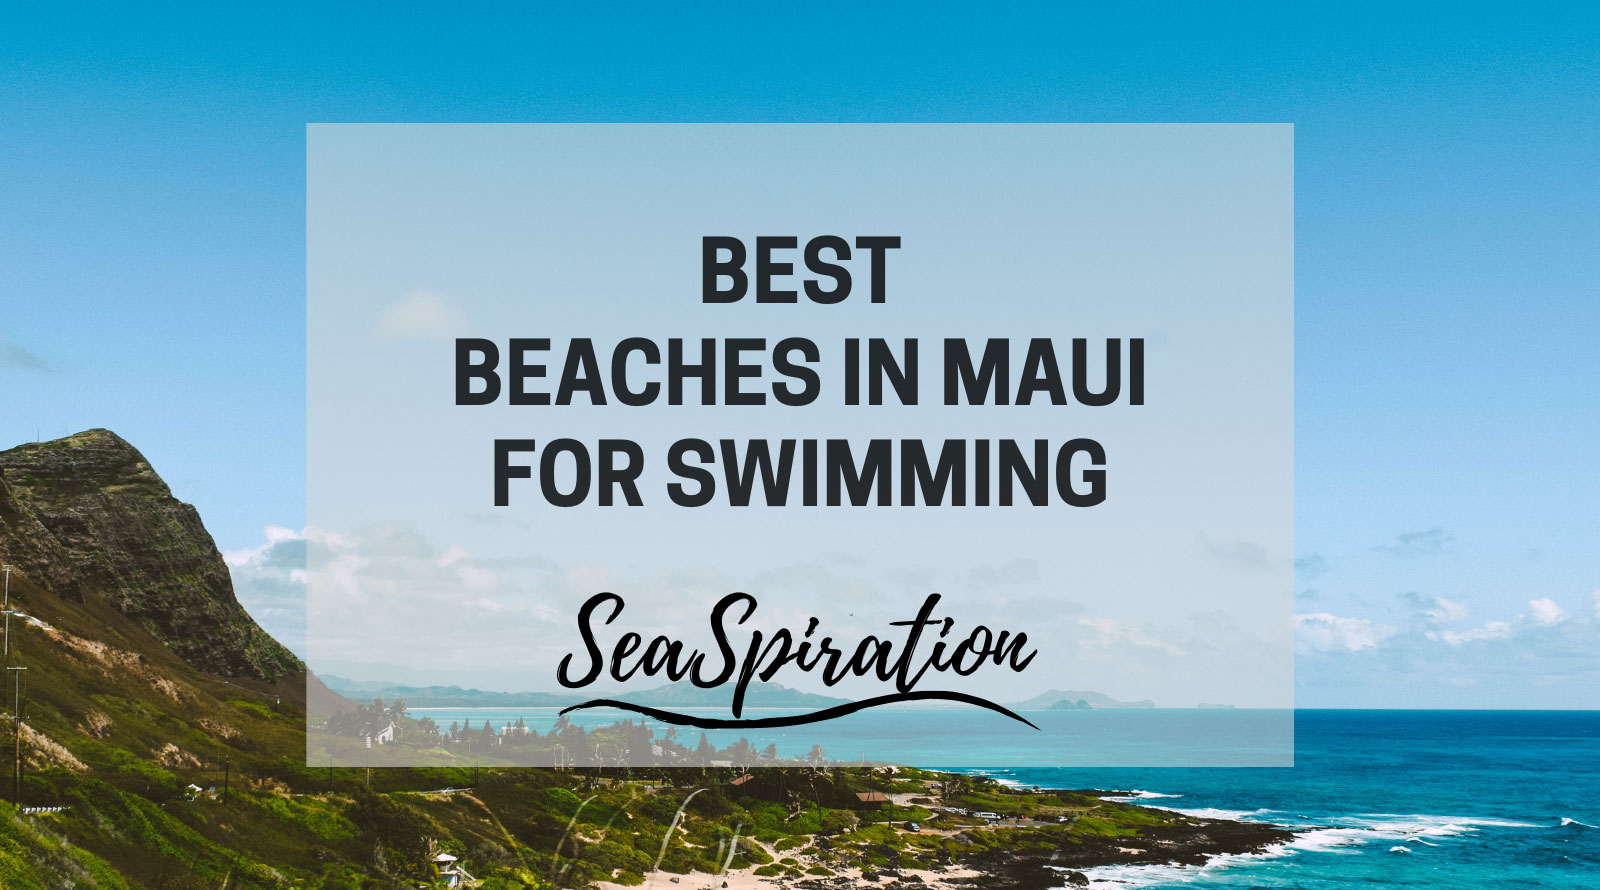 Best beaches in Maui for swimming